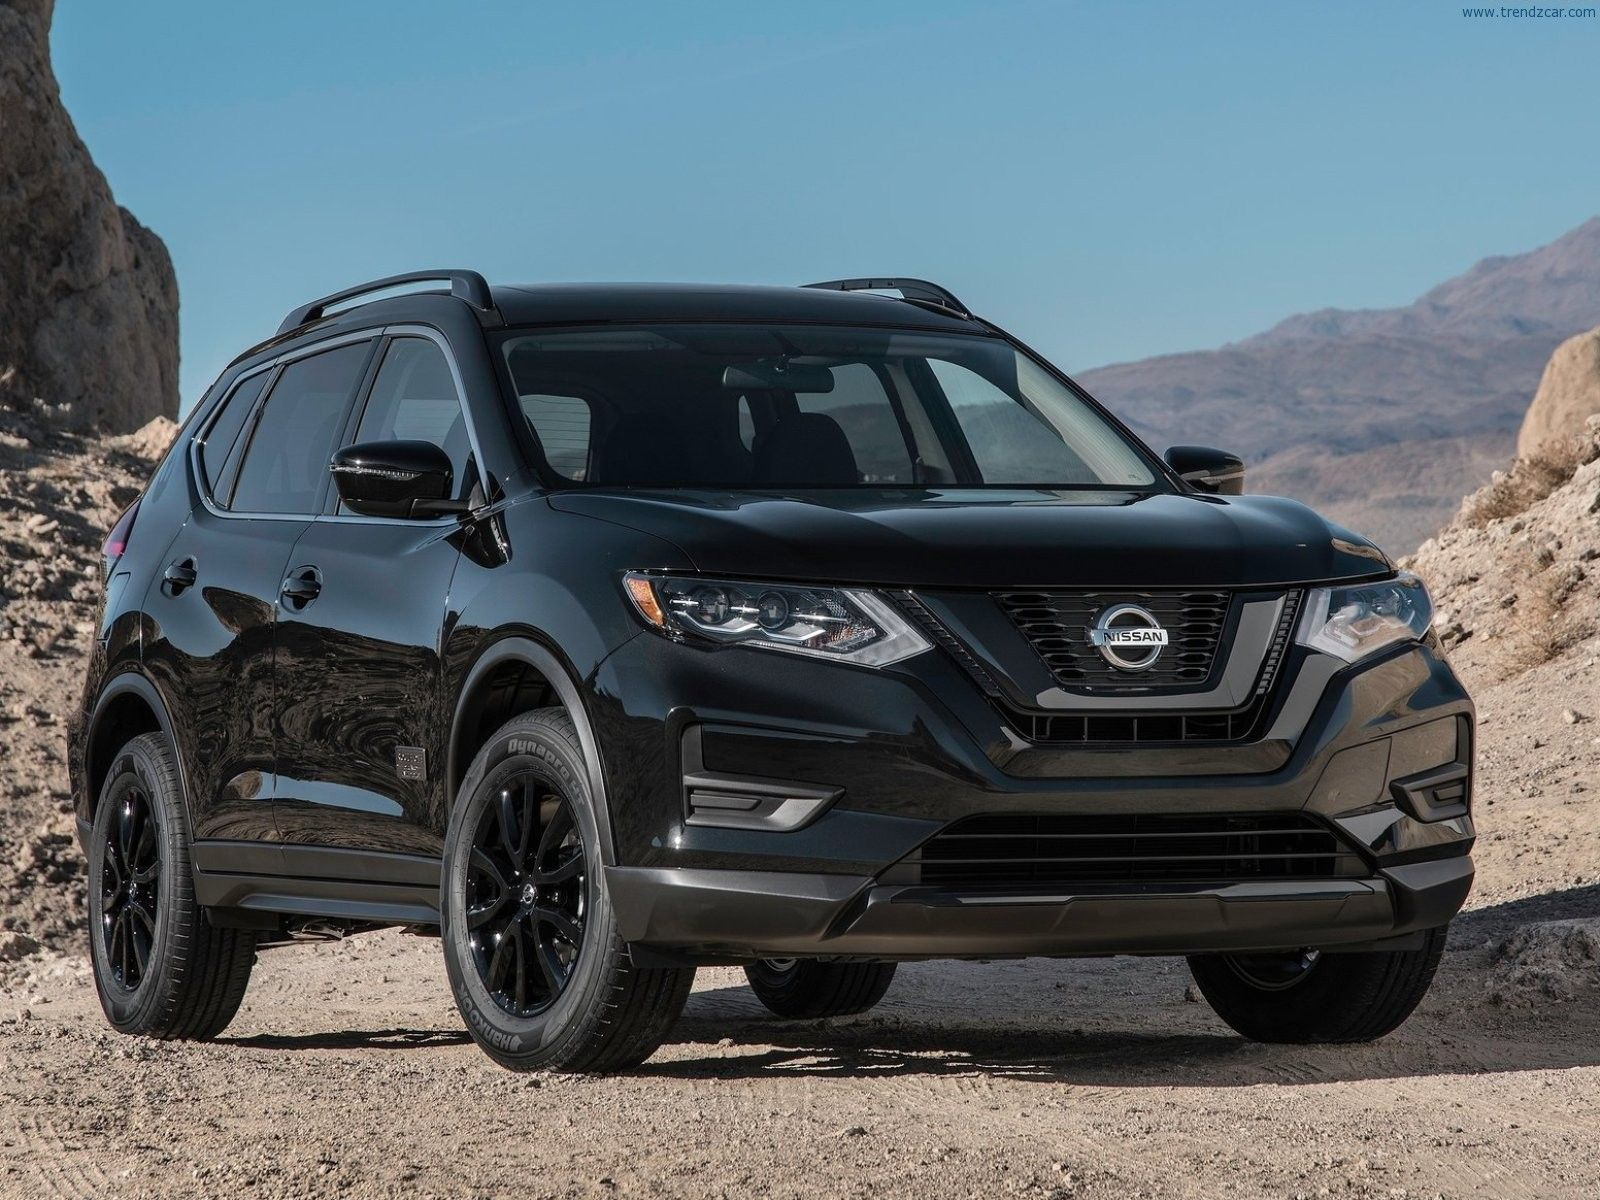 2017 Nissan Rogue One Star Wars Edition Nissan xtrail